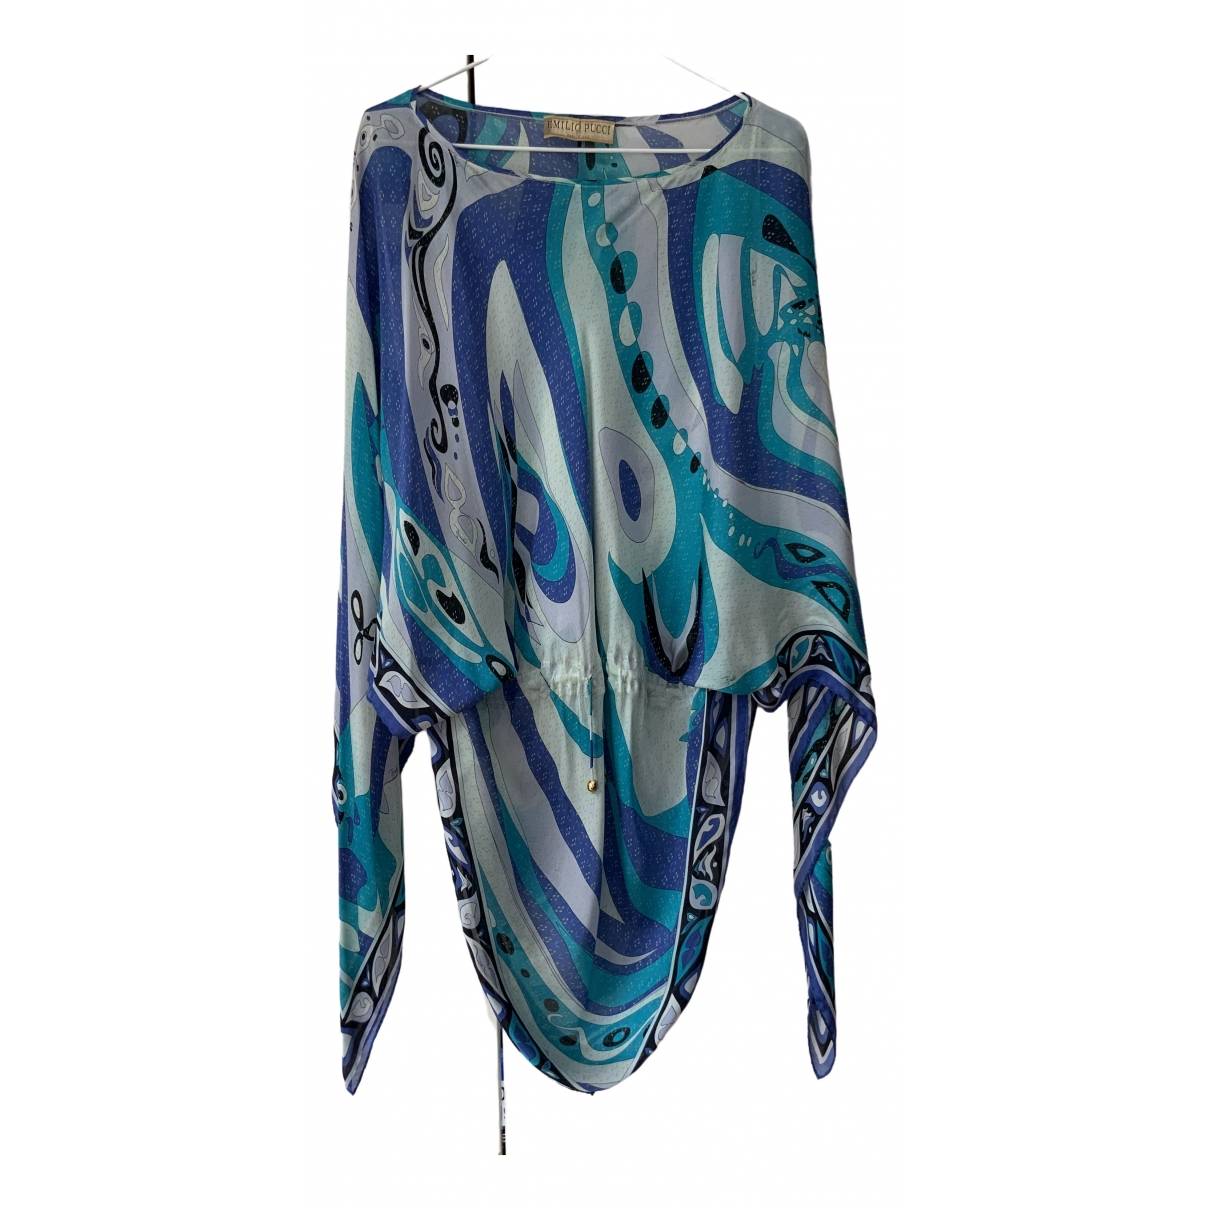 Emilio Pucci \N Blue Silk  top for Women One Size IT